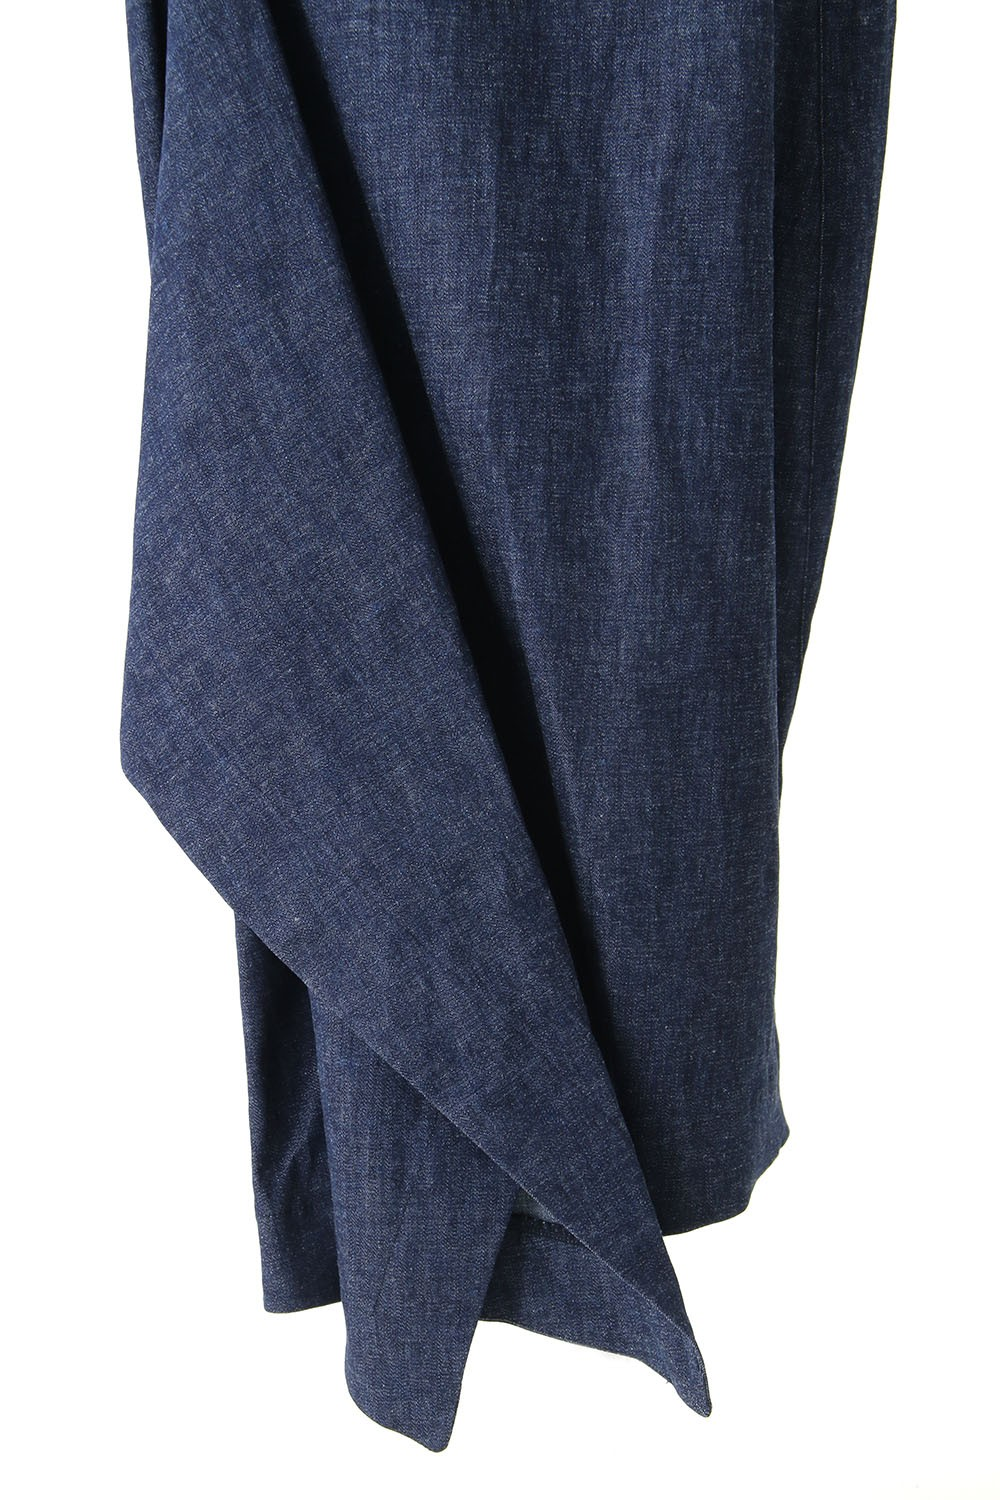 6oz Cotton Linen Stretch Skirt - DK11-06-S01